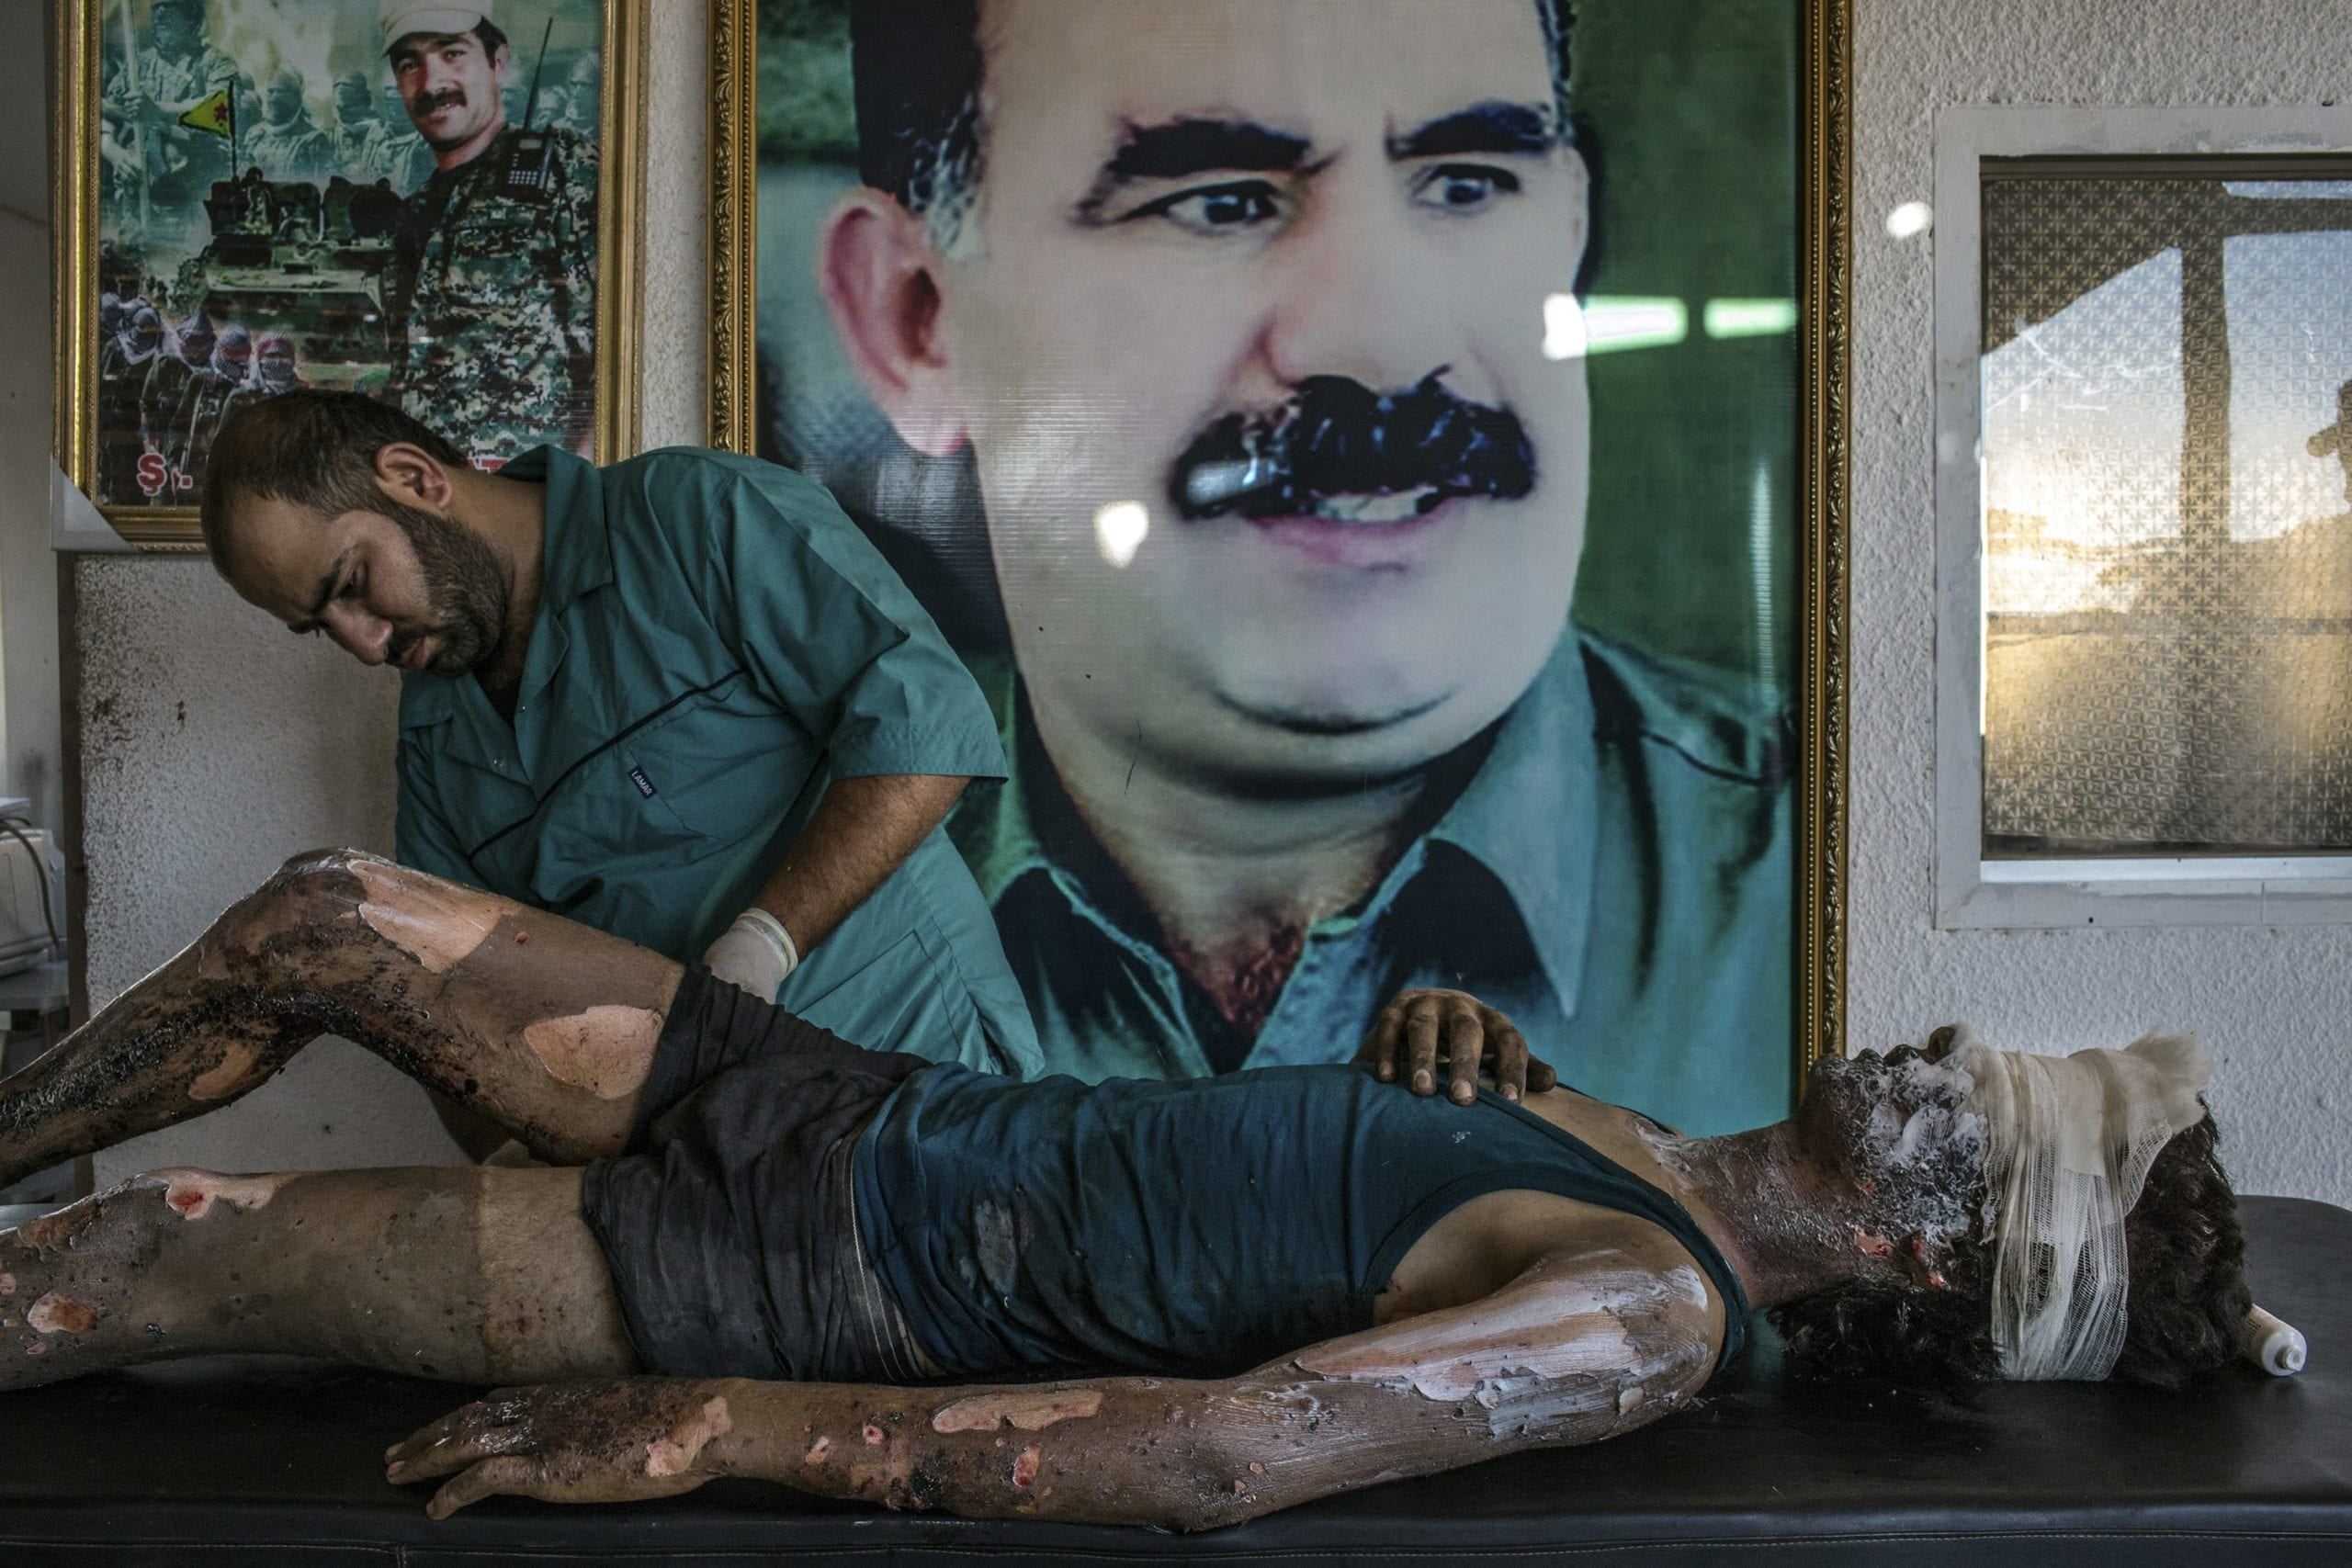 Hasaka, Syria - August 1, 2015. A doctor rubs ointment on the burns of Jacob, 16, in front of a poster of Abdullah Ocalan, center, the jailed leader of the Kurdistan Workers' Party, at a YPG hospital compound on the outskirts of Hasaka. According to YPG fighters at the scene, Jacob is an ISIS fighter from Deir al-Zour and the only survivior from an ambush made by YPG fighters over a truck alleged to carry ISIS fighters on the outskirts of Hasaka. Six ISIS fighters died in the attack, 5 of them completely disfigured by the explosion (c) Mauricio Lima for The New York Times